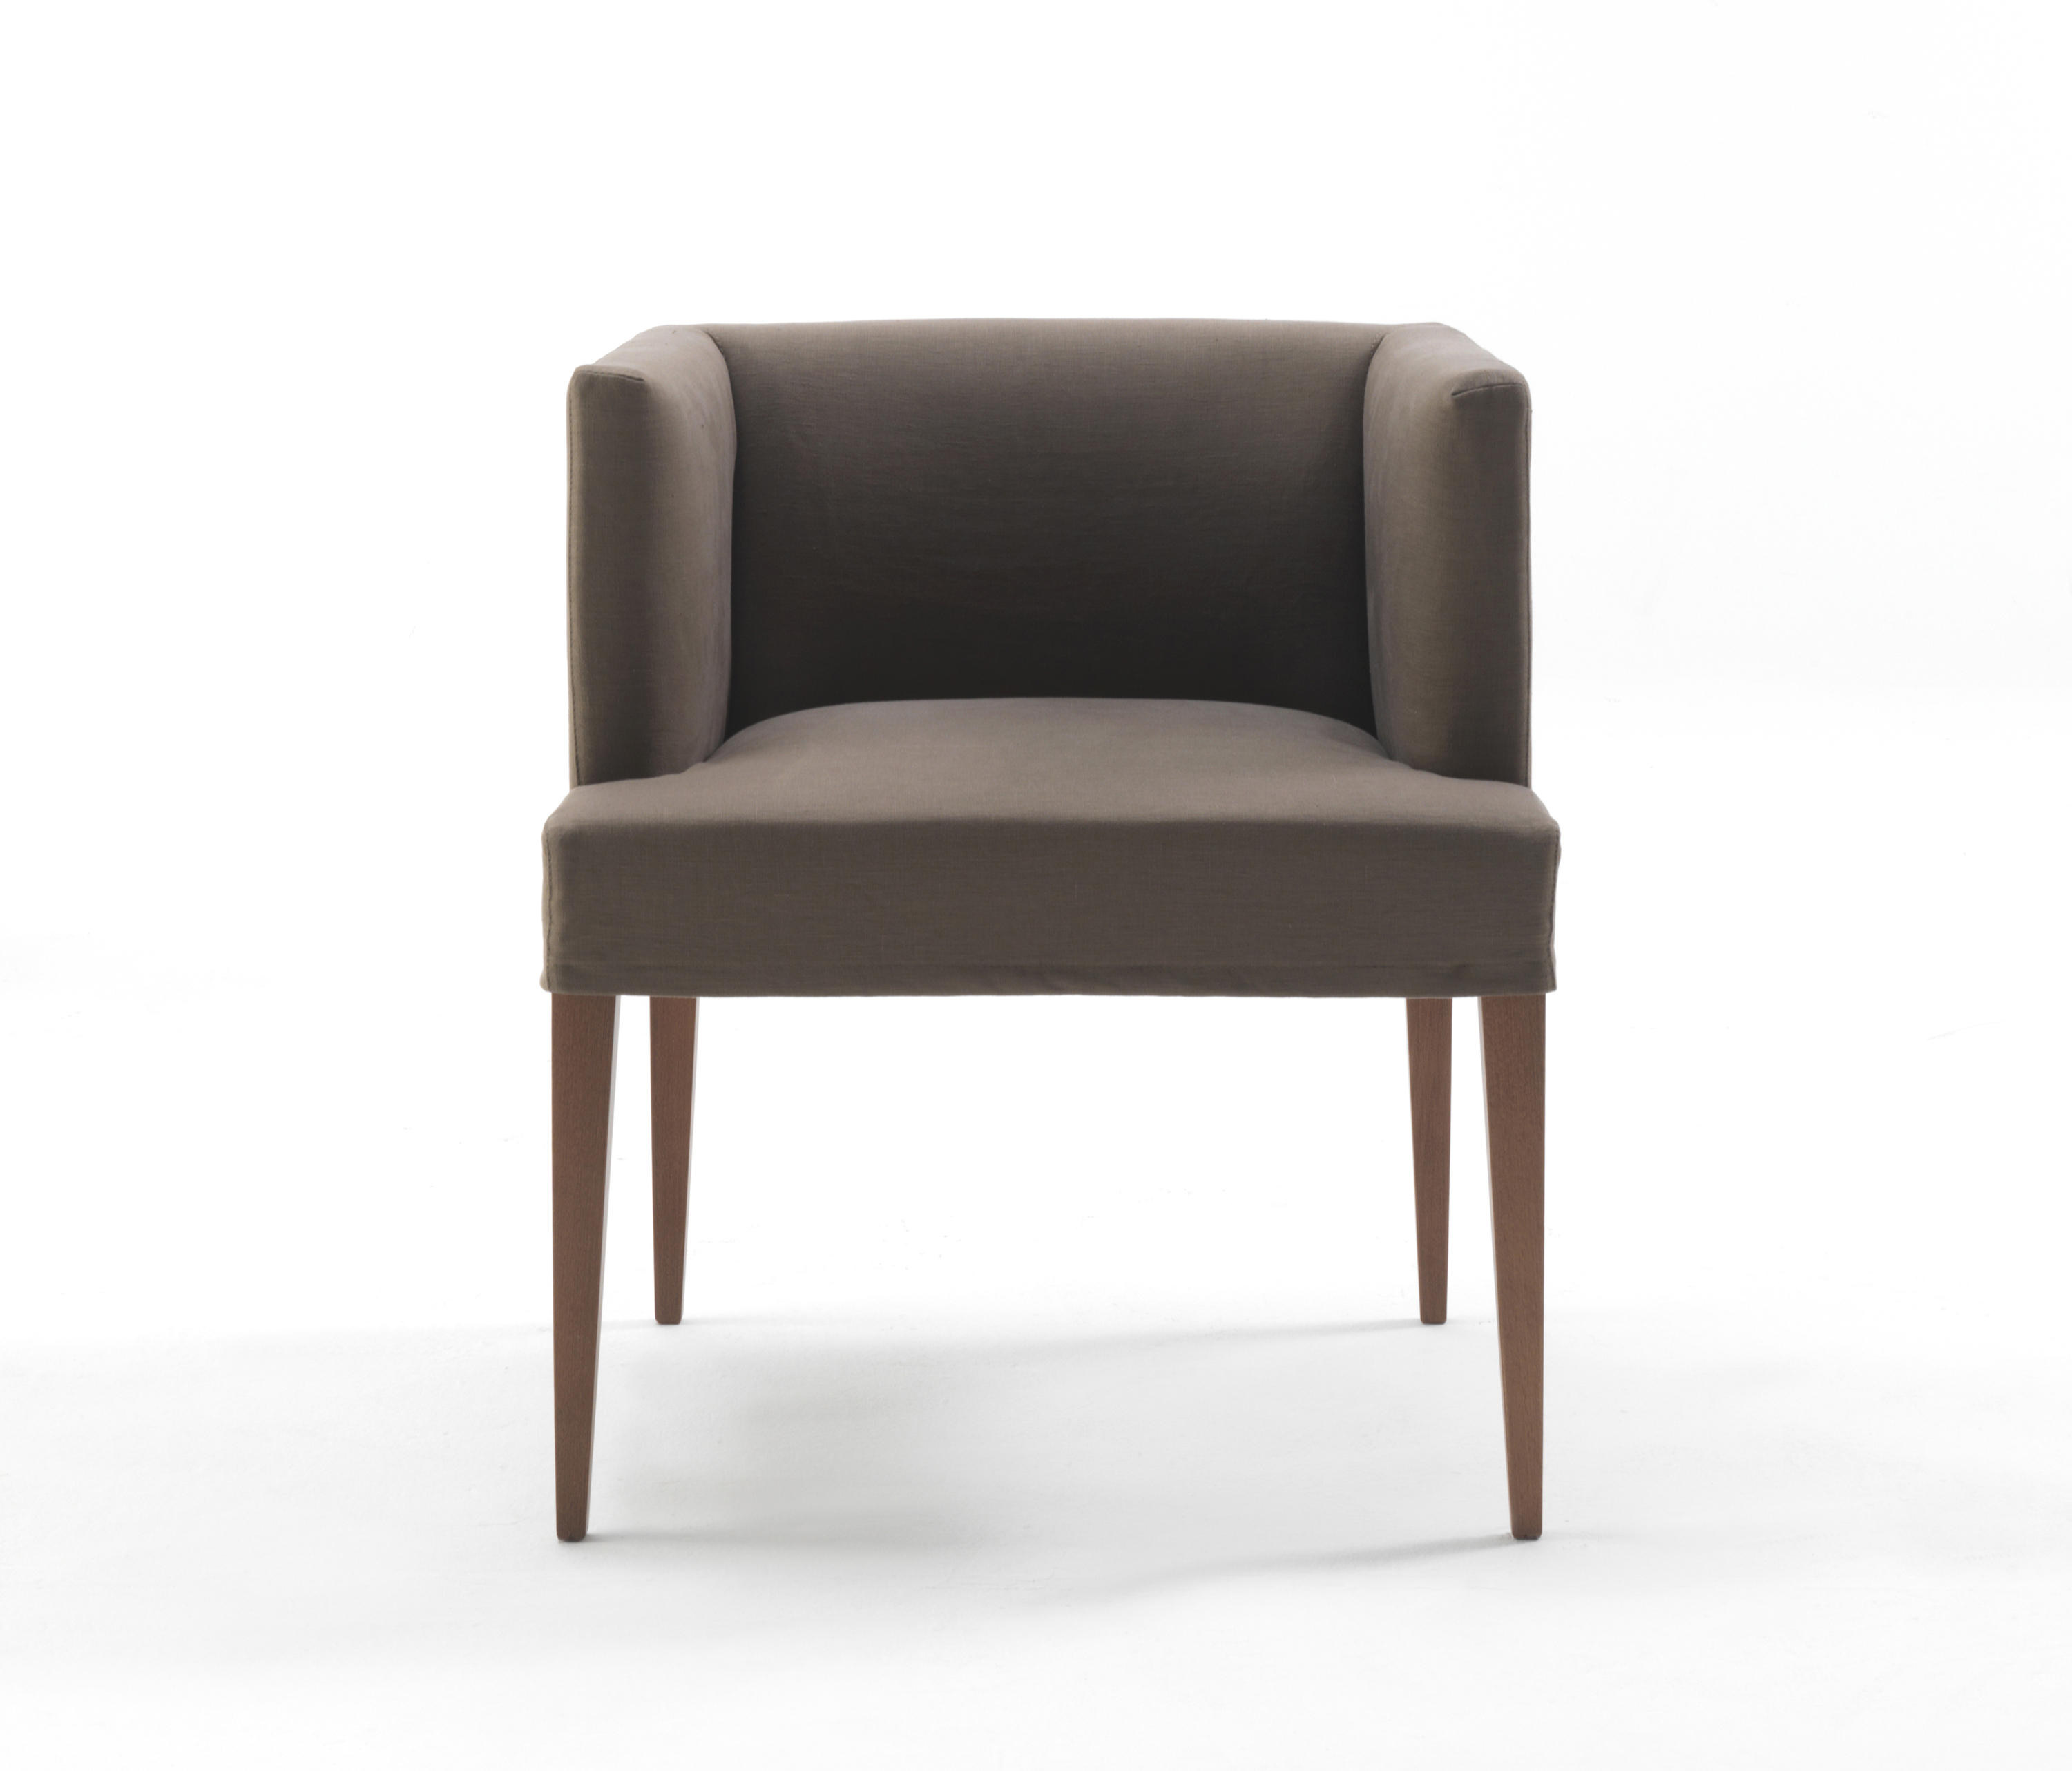 Adele Junior Visitors Chairs Side Chairs From Frigerio